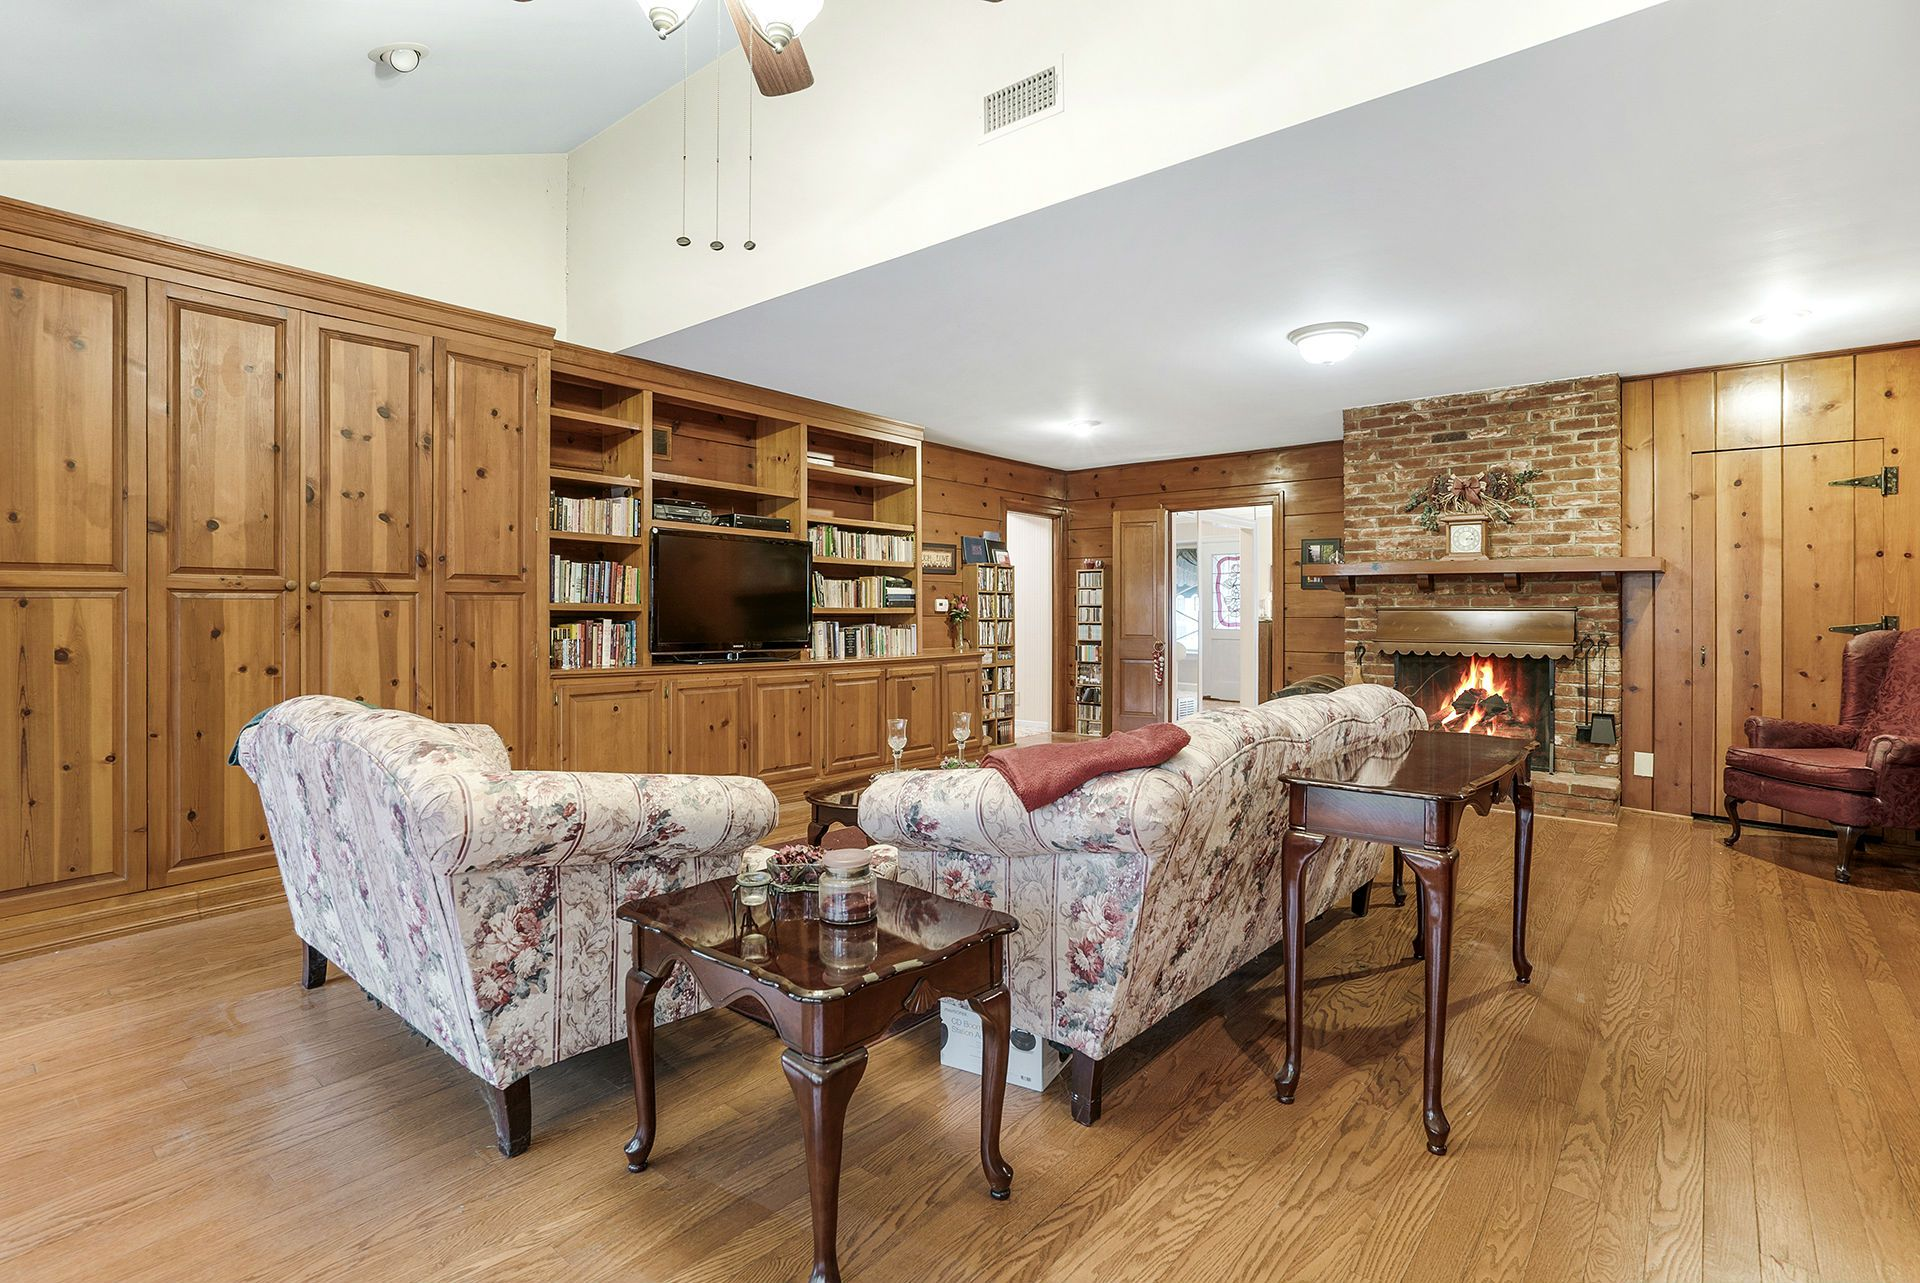 Alternate view of Family Room -- look at all of the storage, room for large television, and think of the game nights you could have in this room too!